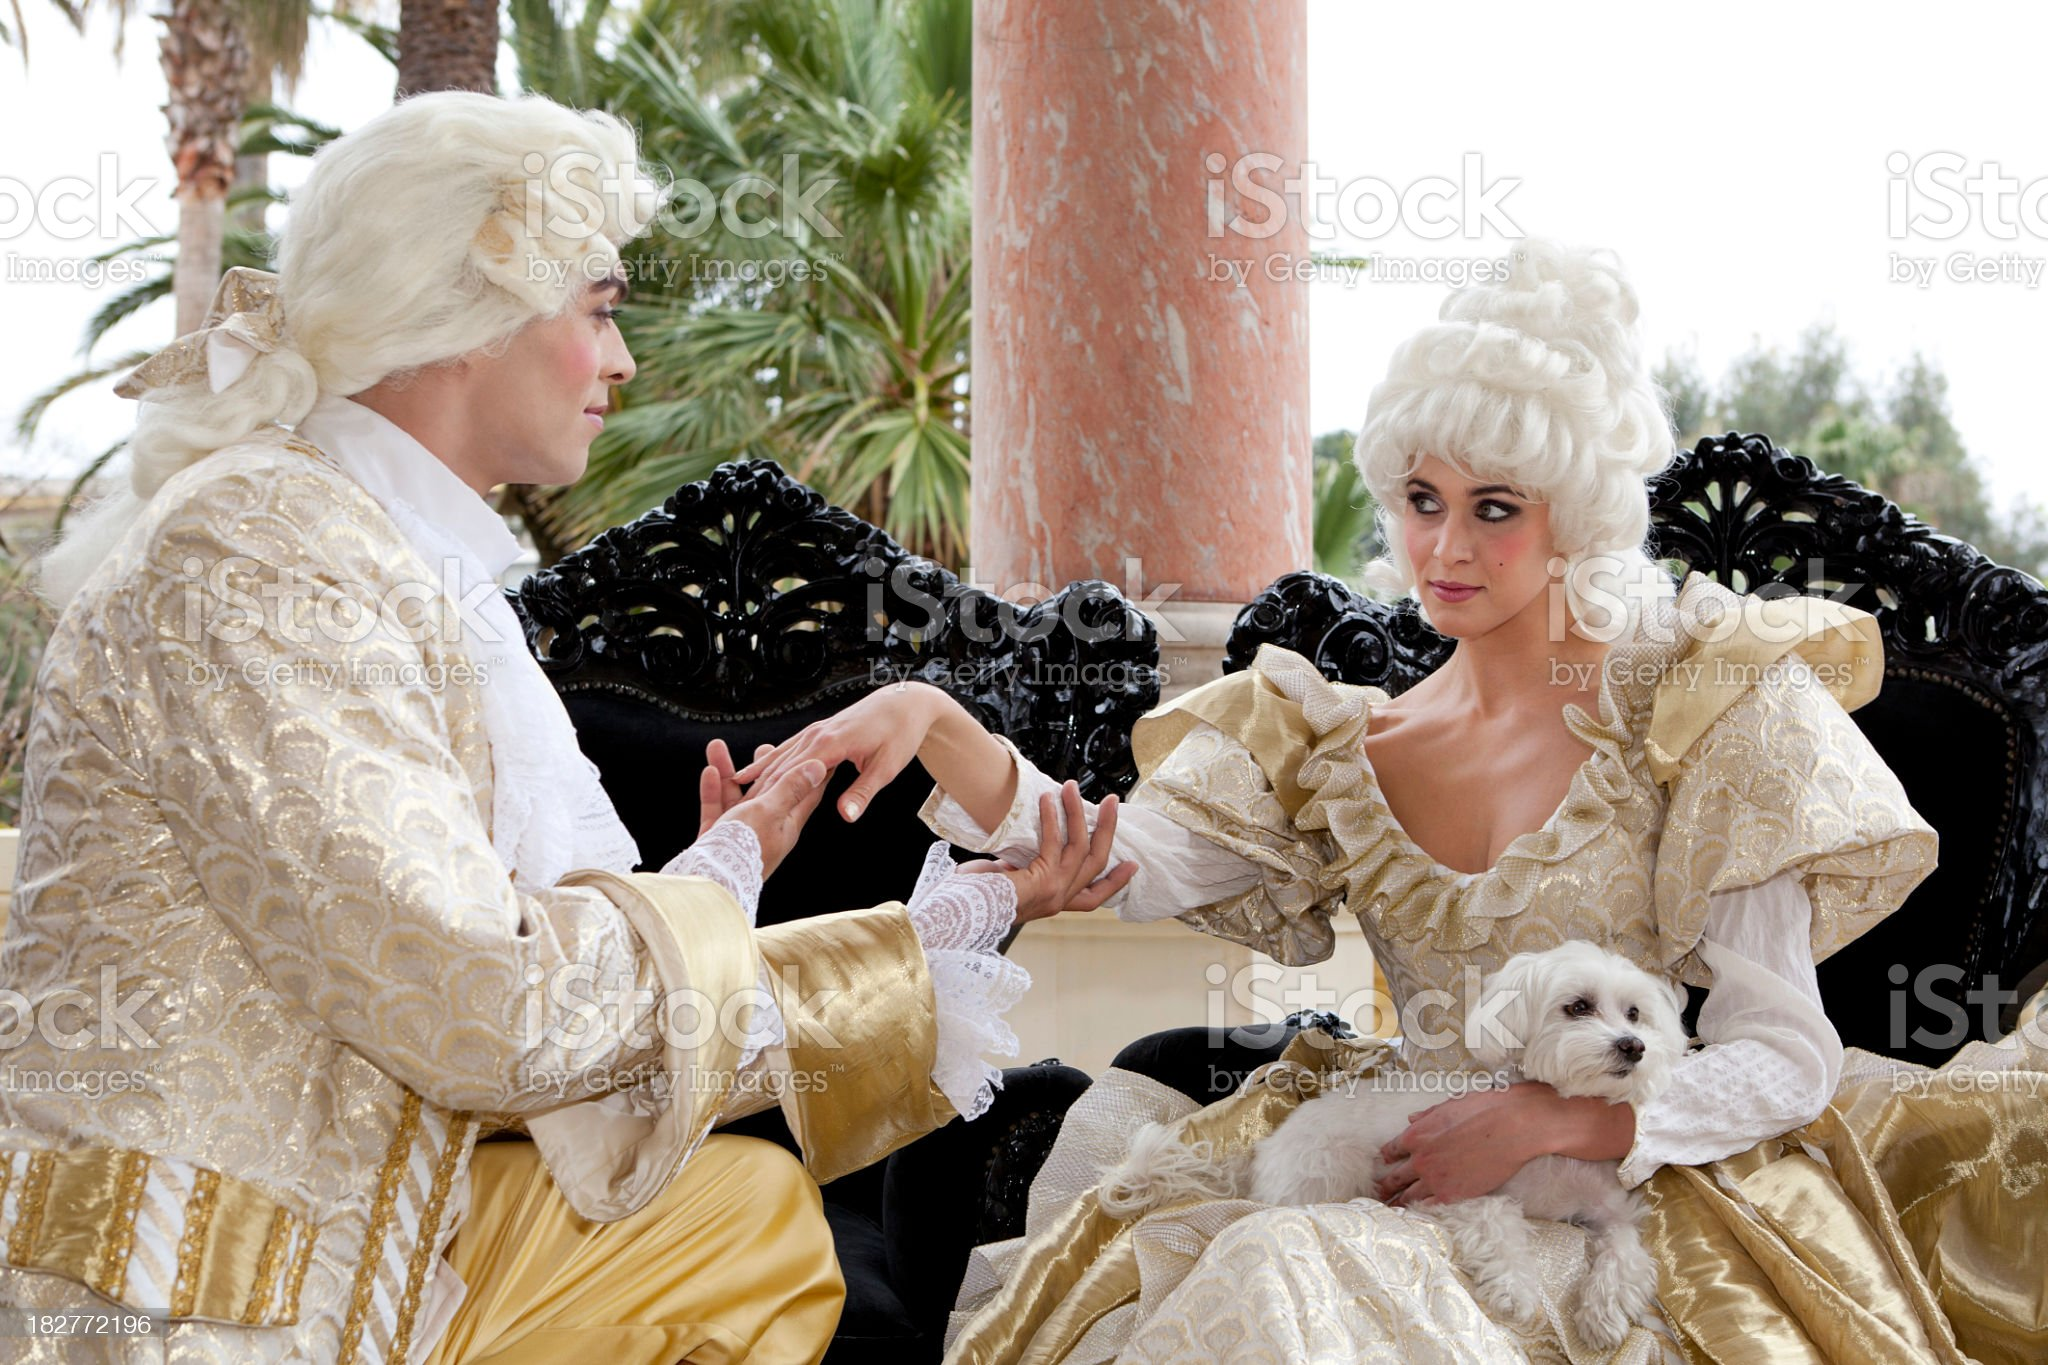 Holding hand of Marie Antoinette royalty-free stock photo